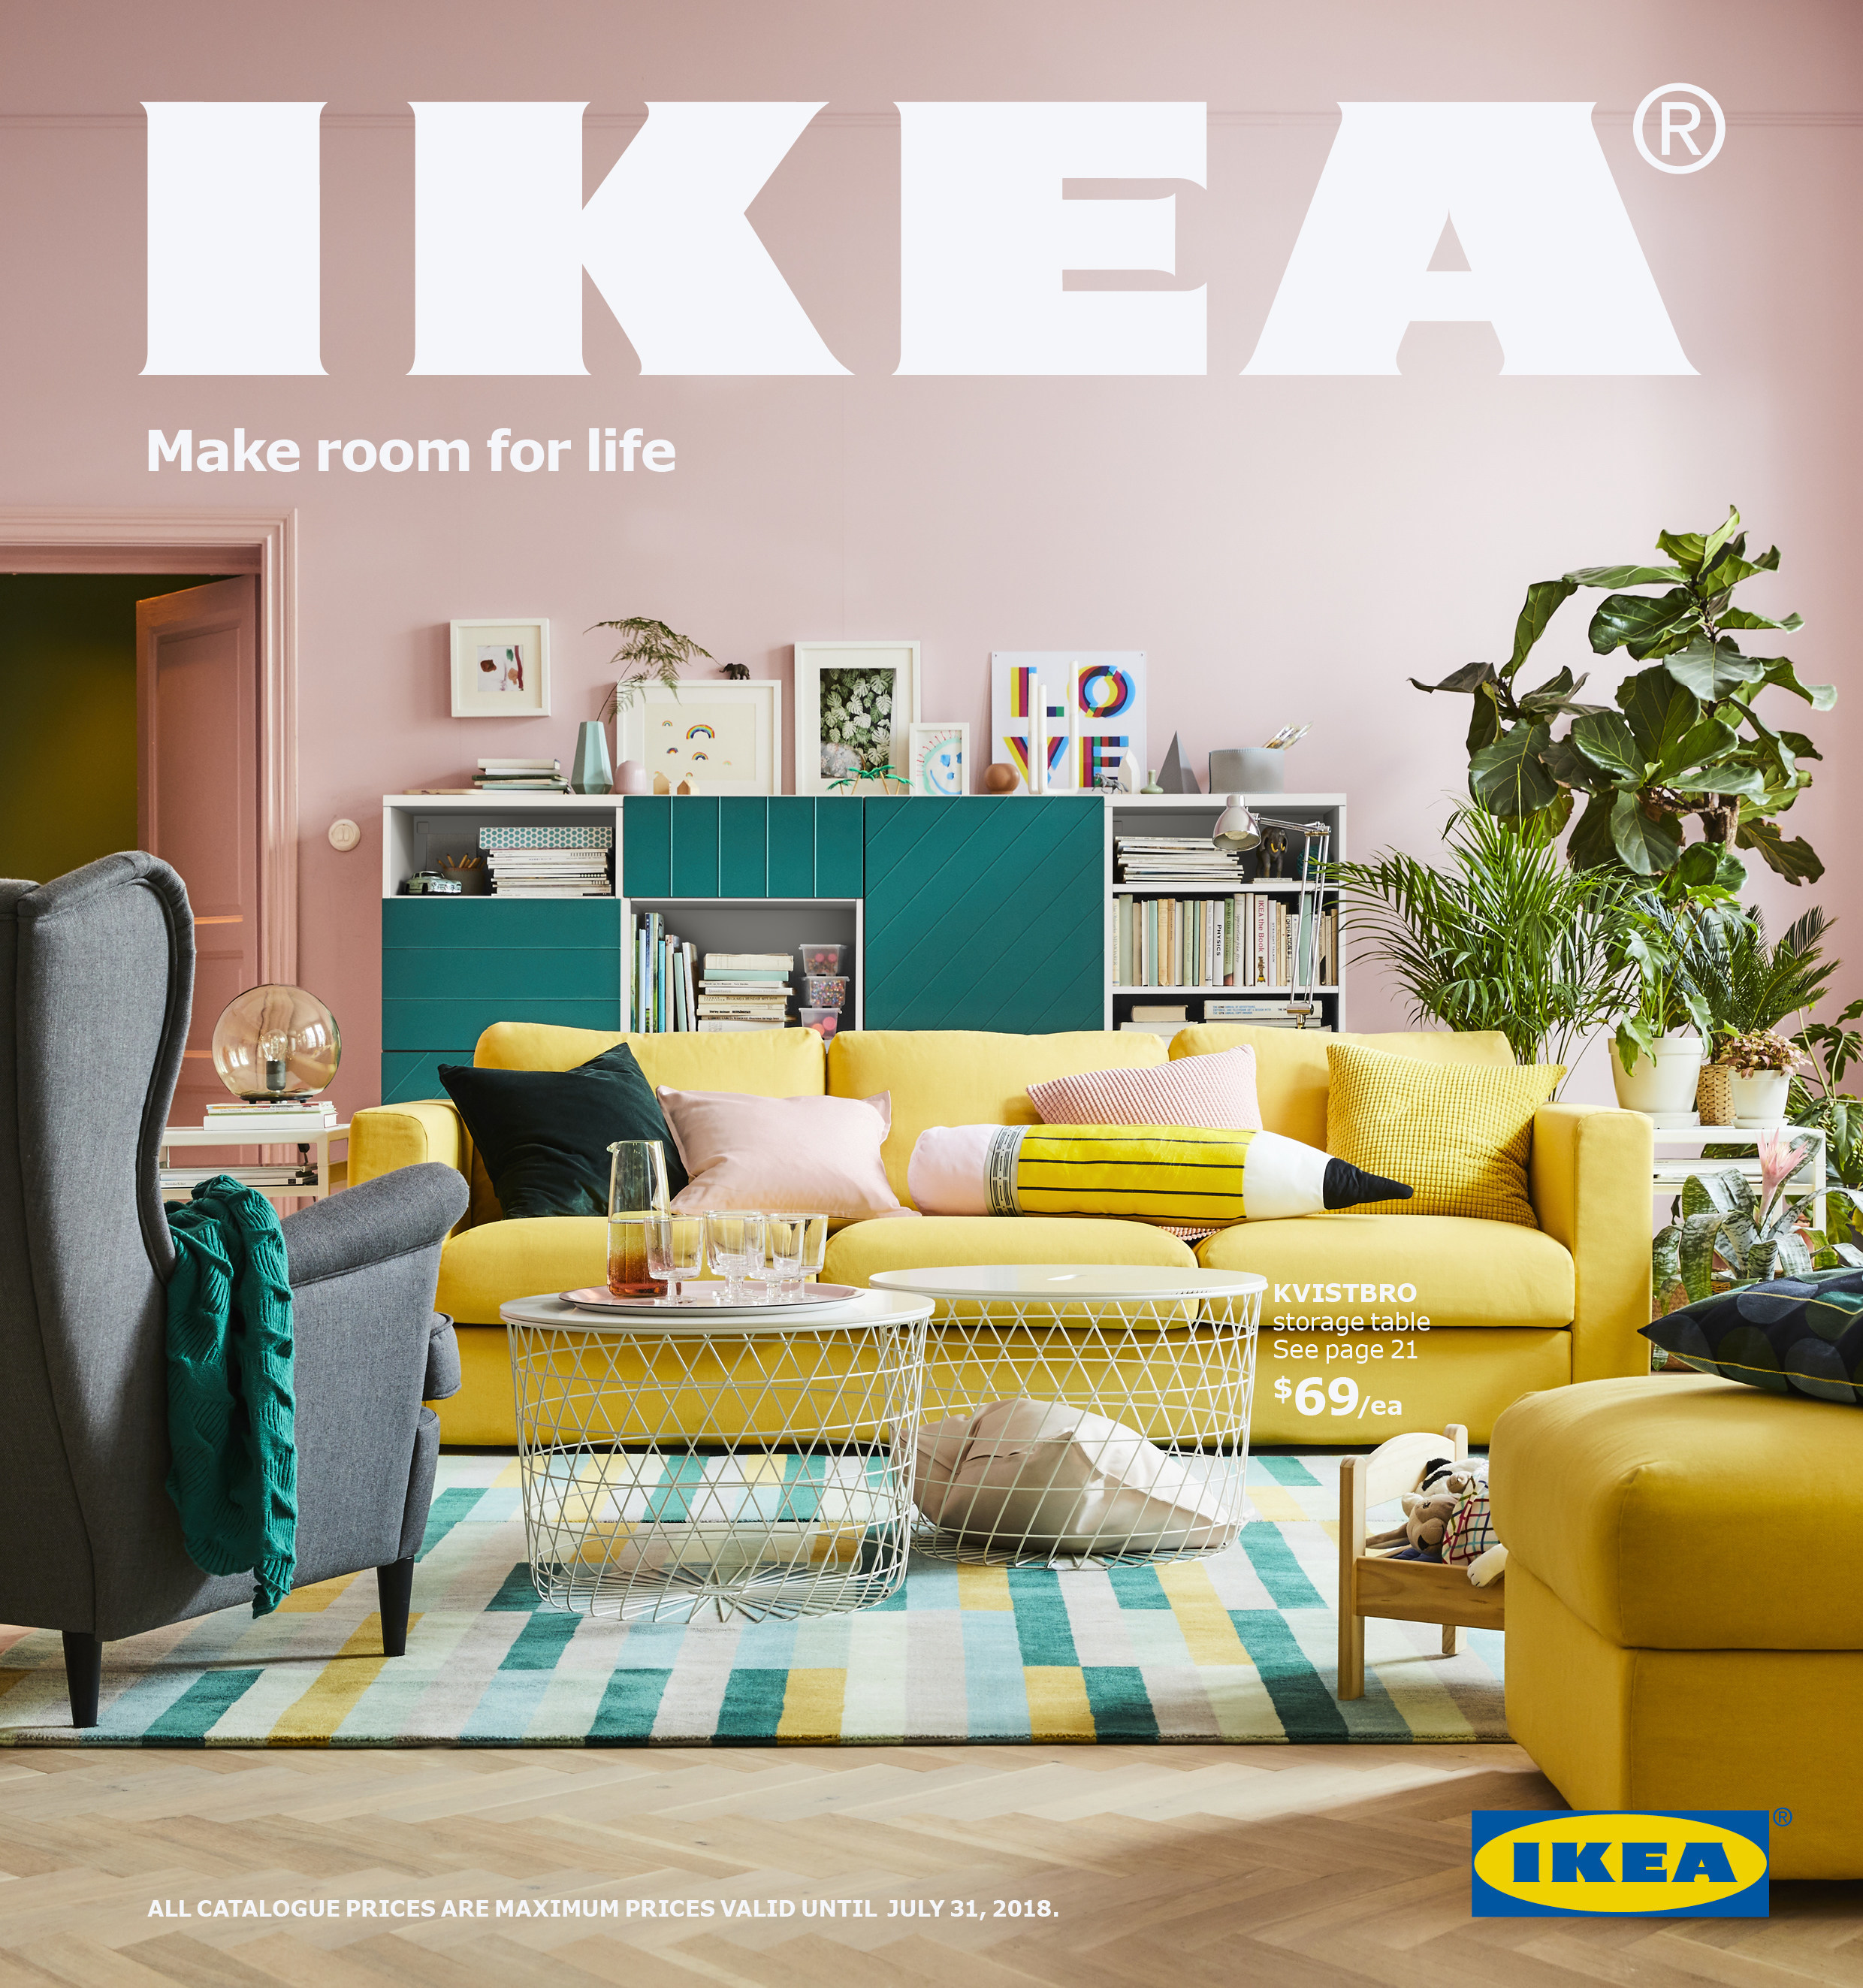 2018 IKEA Catalogue Set to Land in Mailboxes Across Canada : IKEACanada2018IKEACatalogueSettoLandinMailboxesAcross from www.newswire.ca size 2480 x 2646 jpeg 1425kB